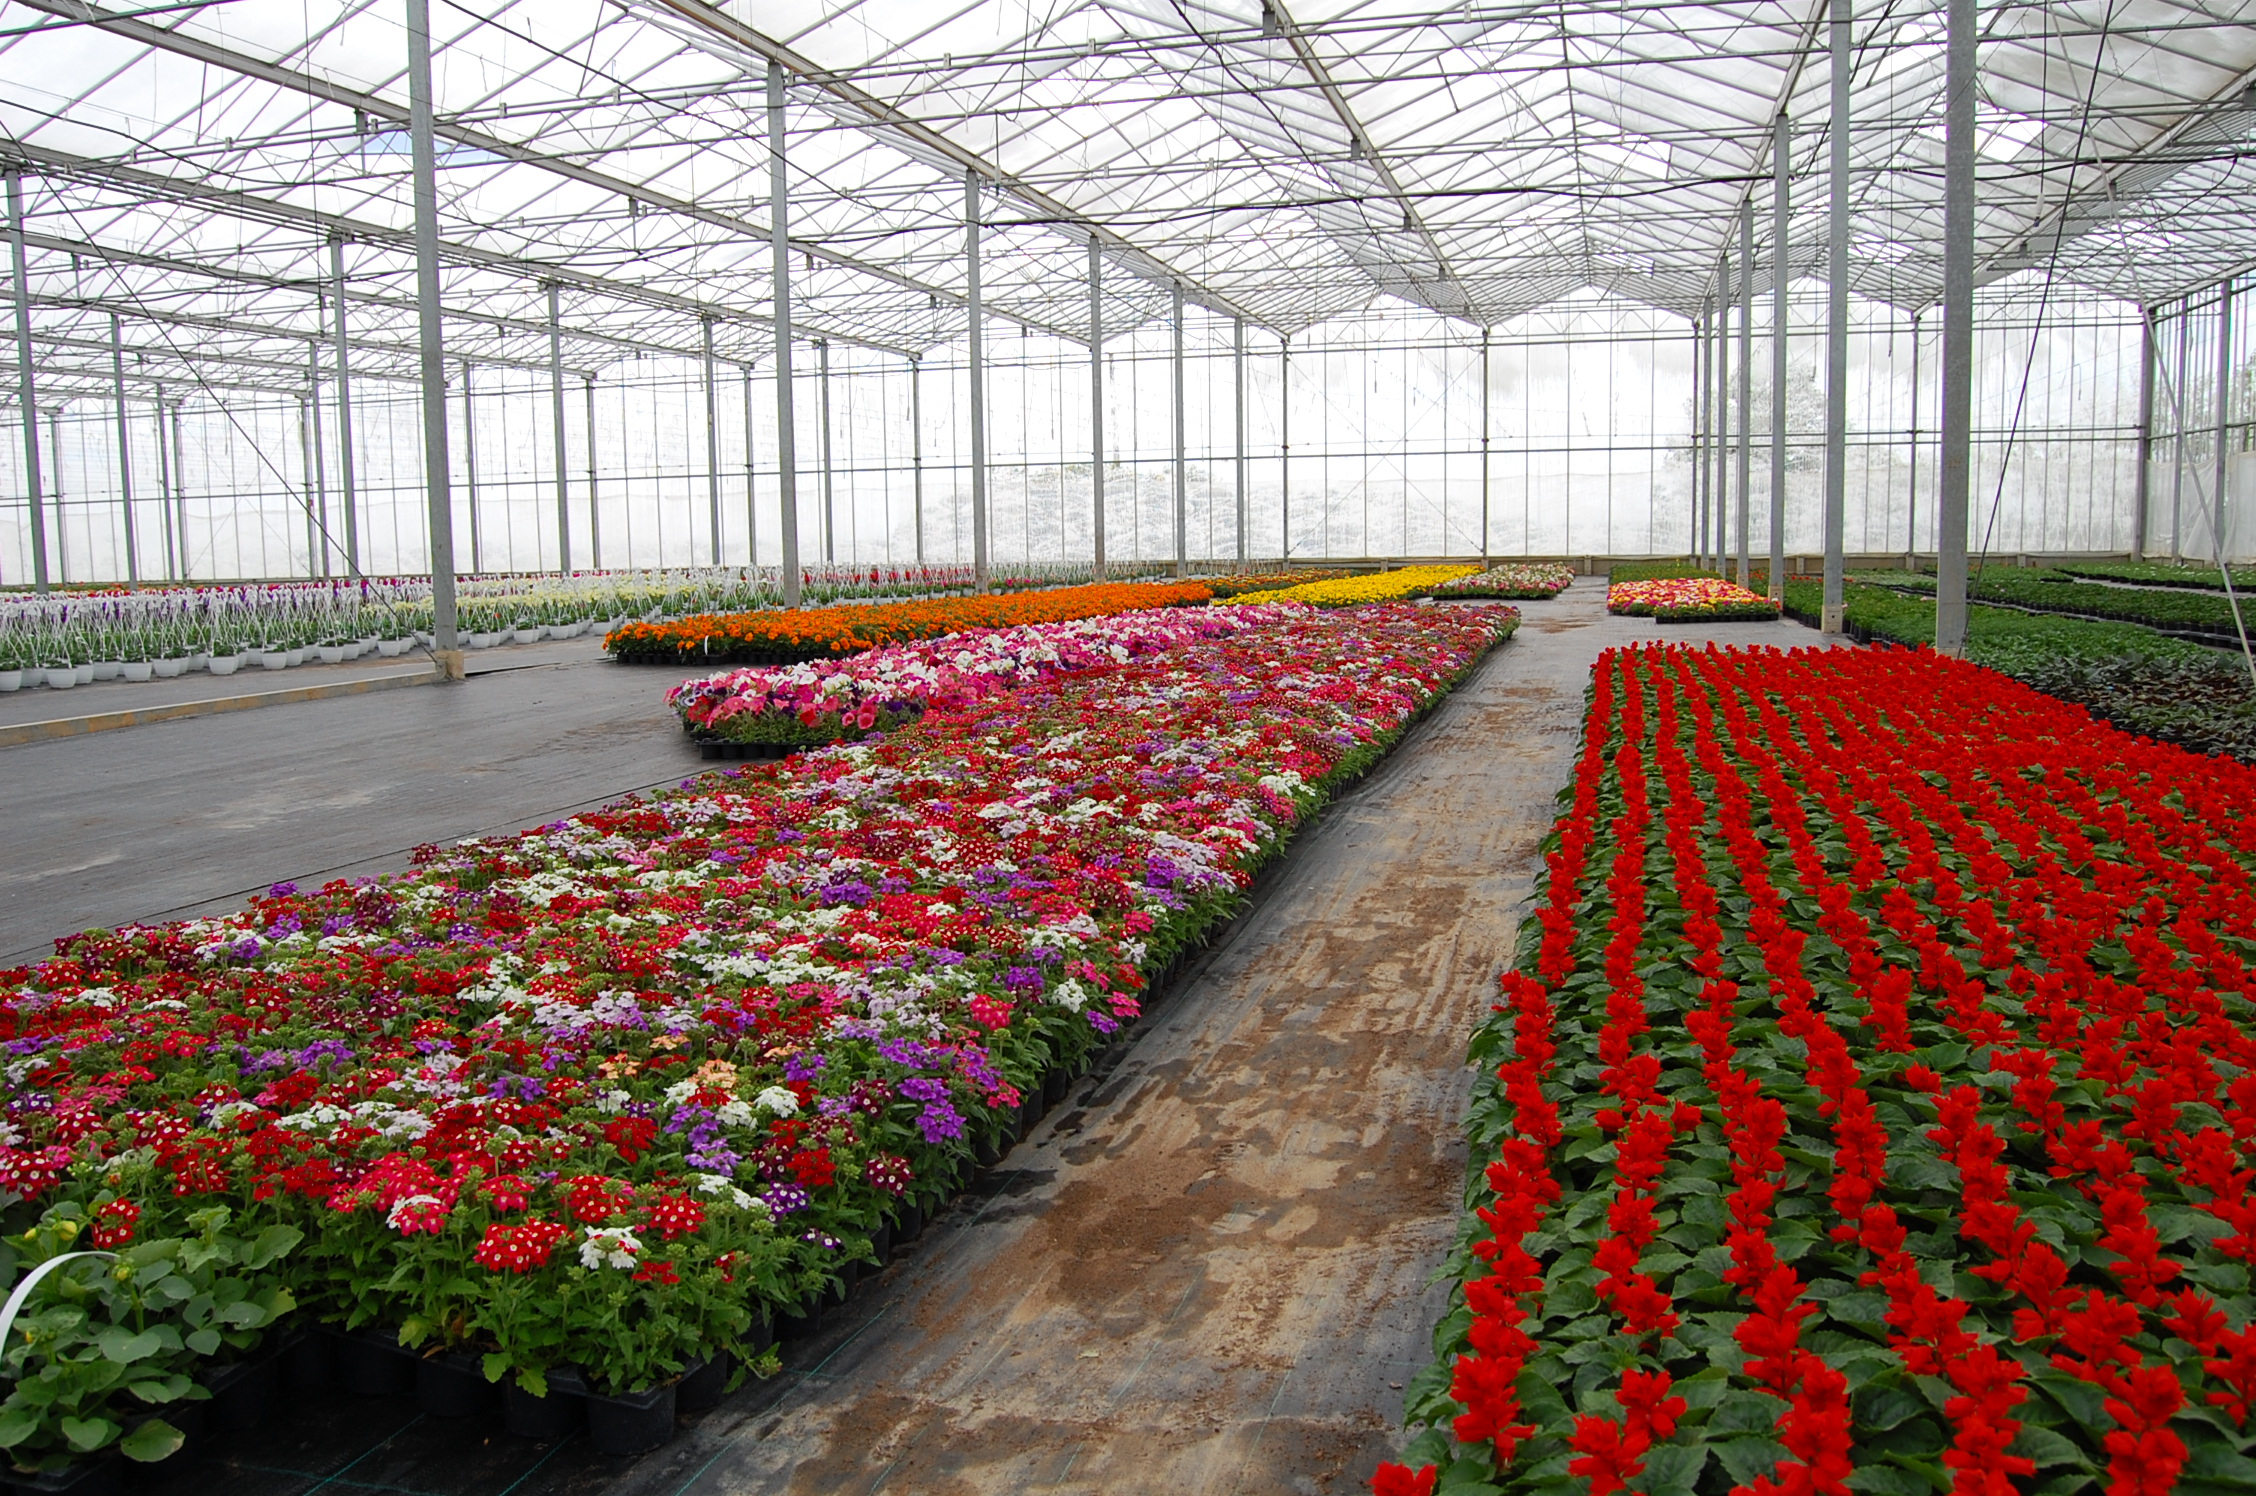 Glasshouse With Flowers